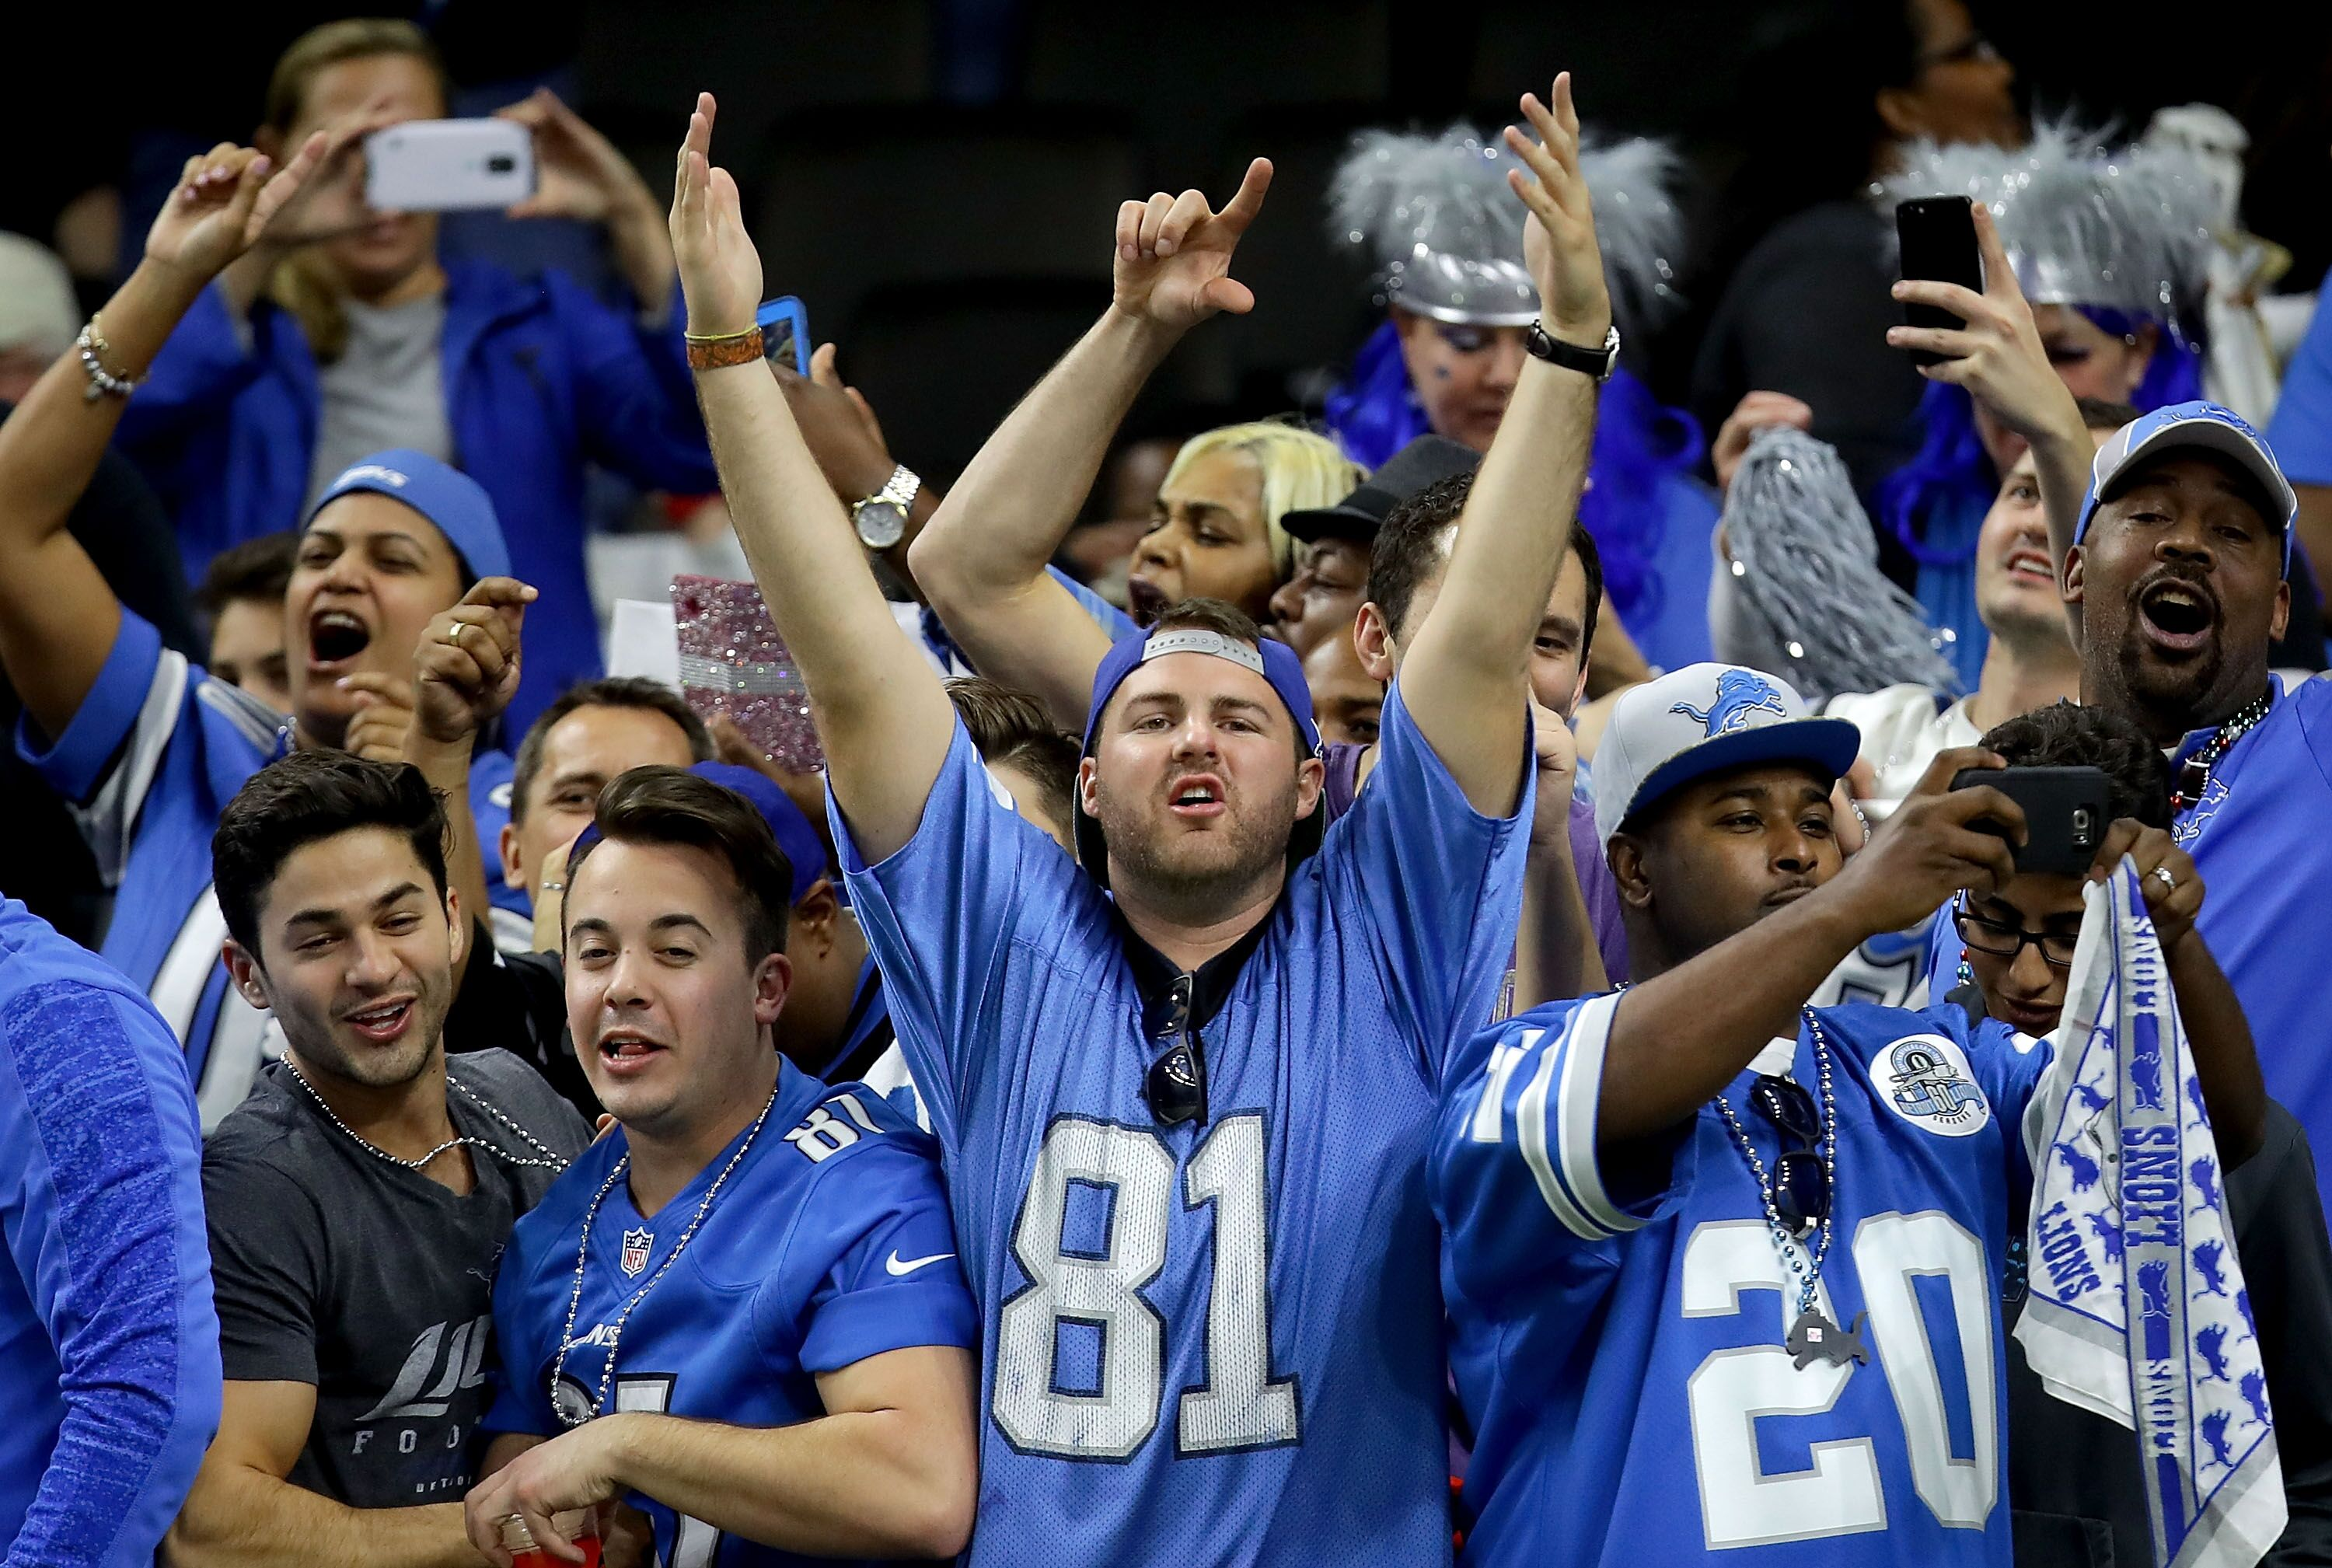 Detroit Lions: Fans torn on what to do with the 8th pick